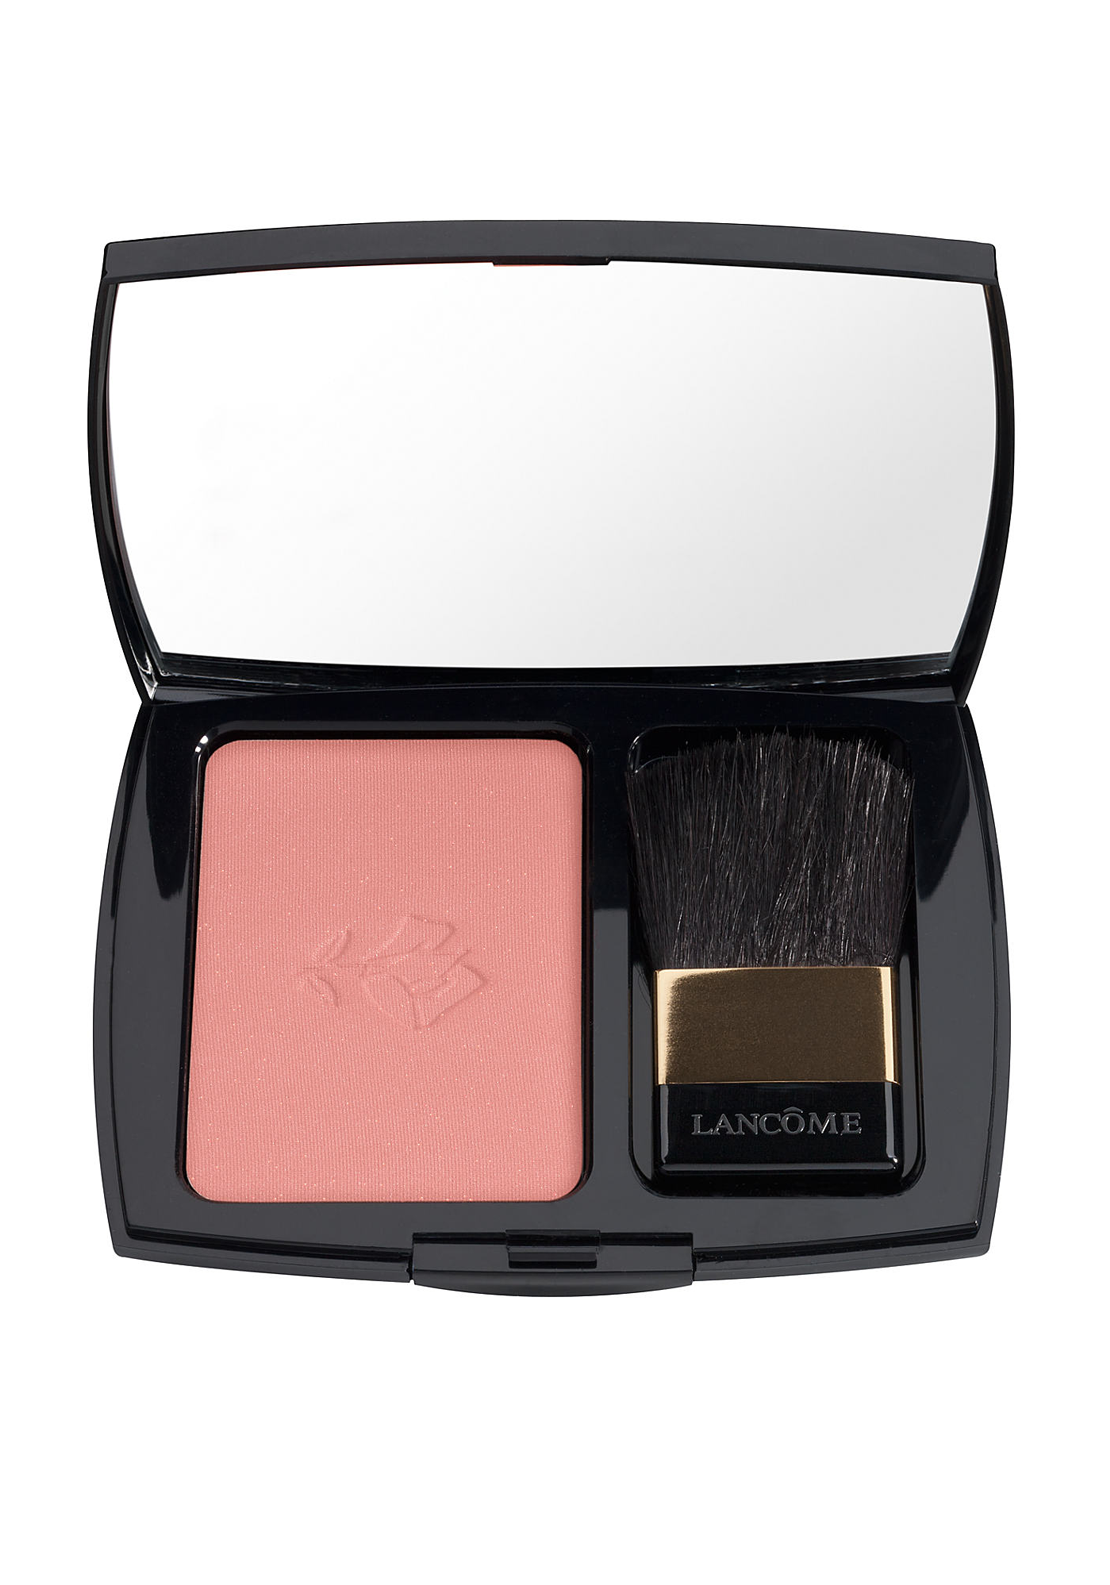 Lancome Blush Subtil Long Lasting Powder Blusher, 02